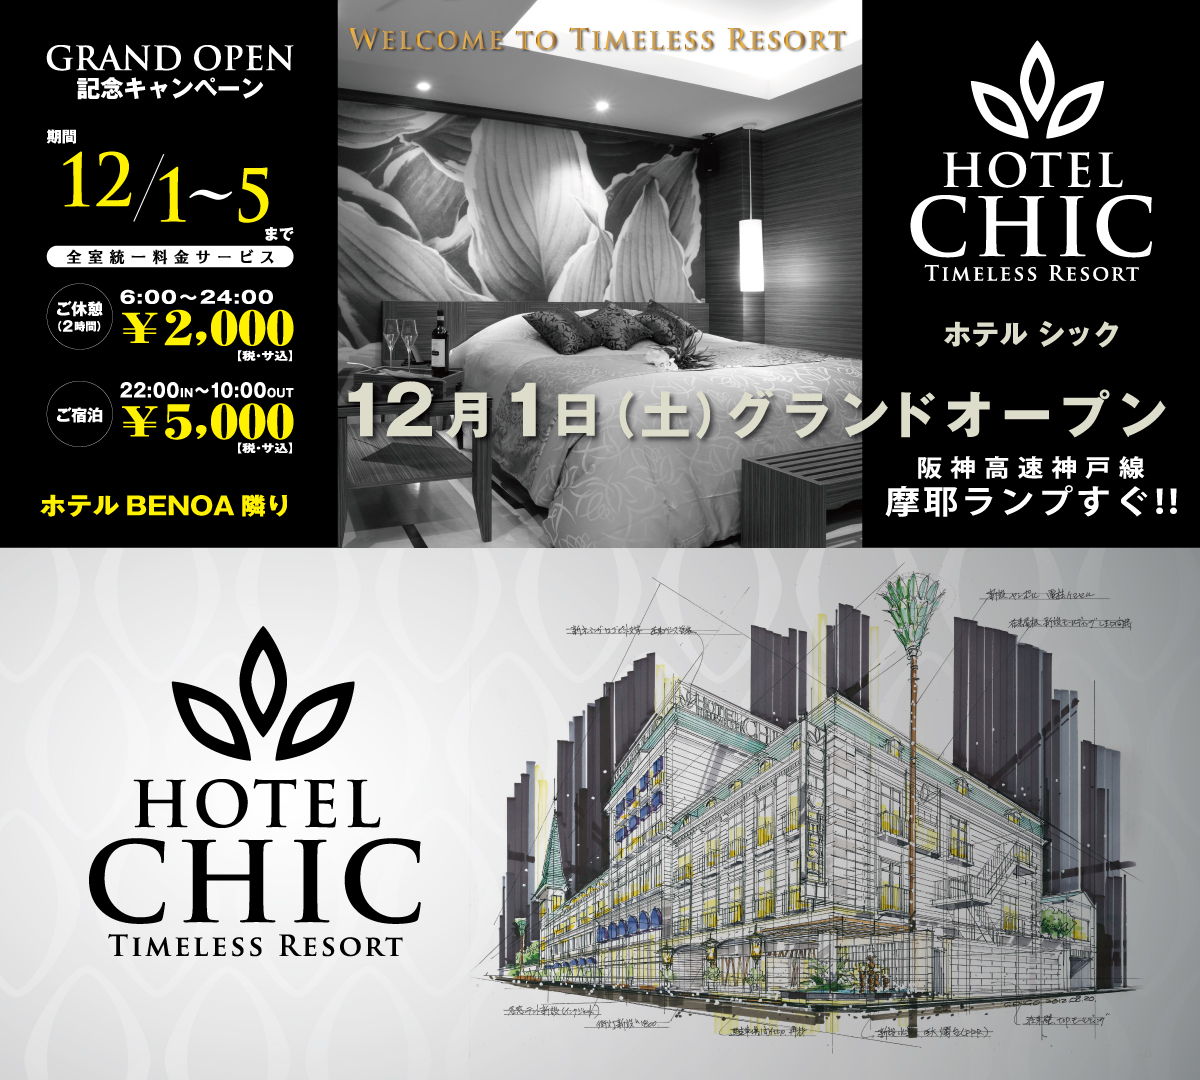 HOTEL CHIC TIMELESS RESORT COMING SOON